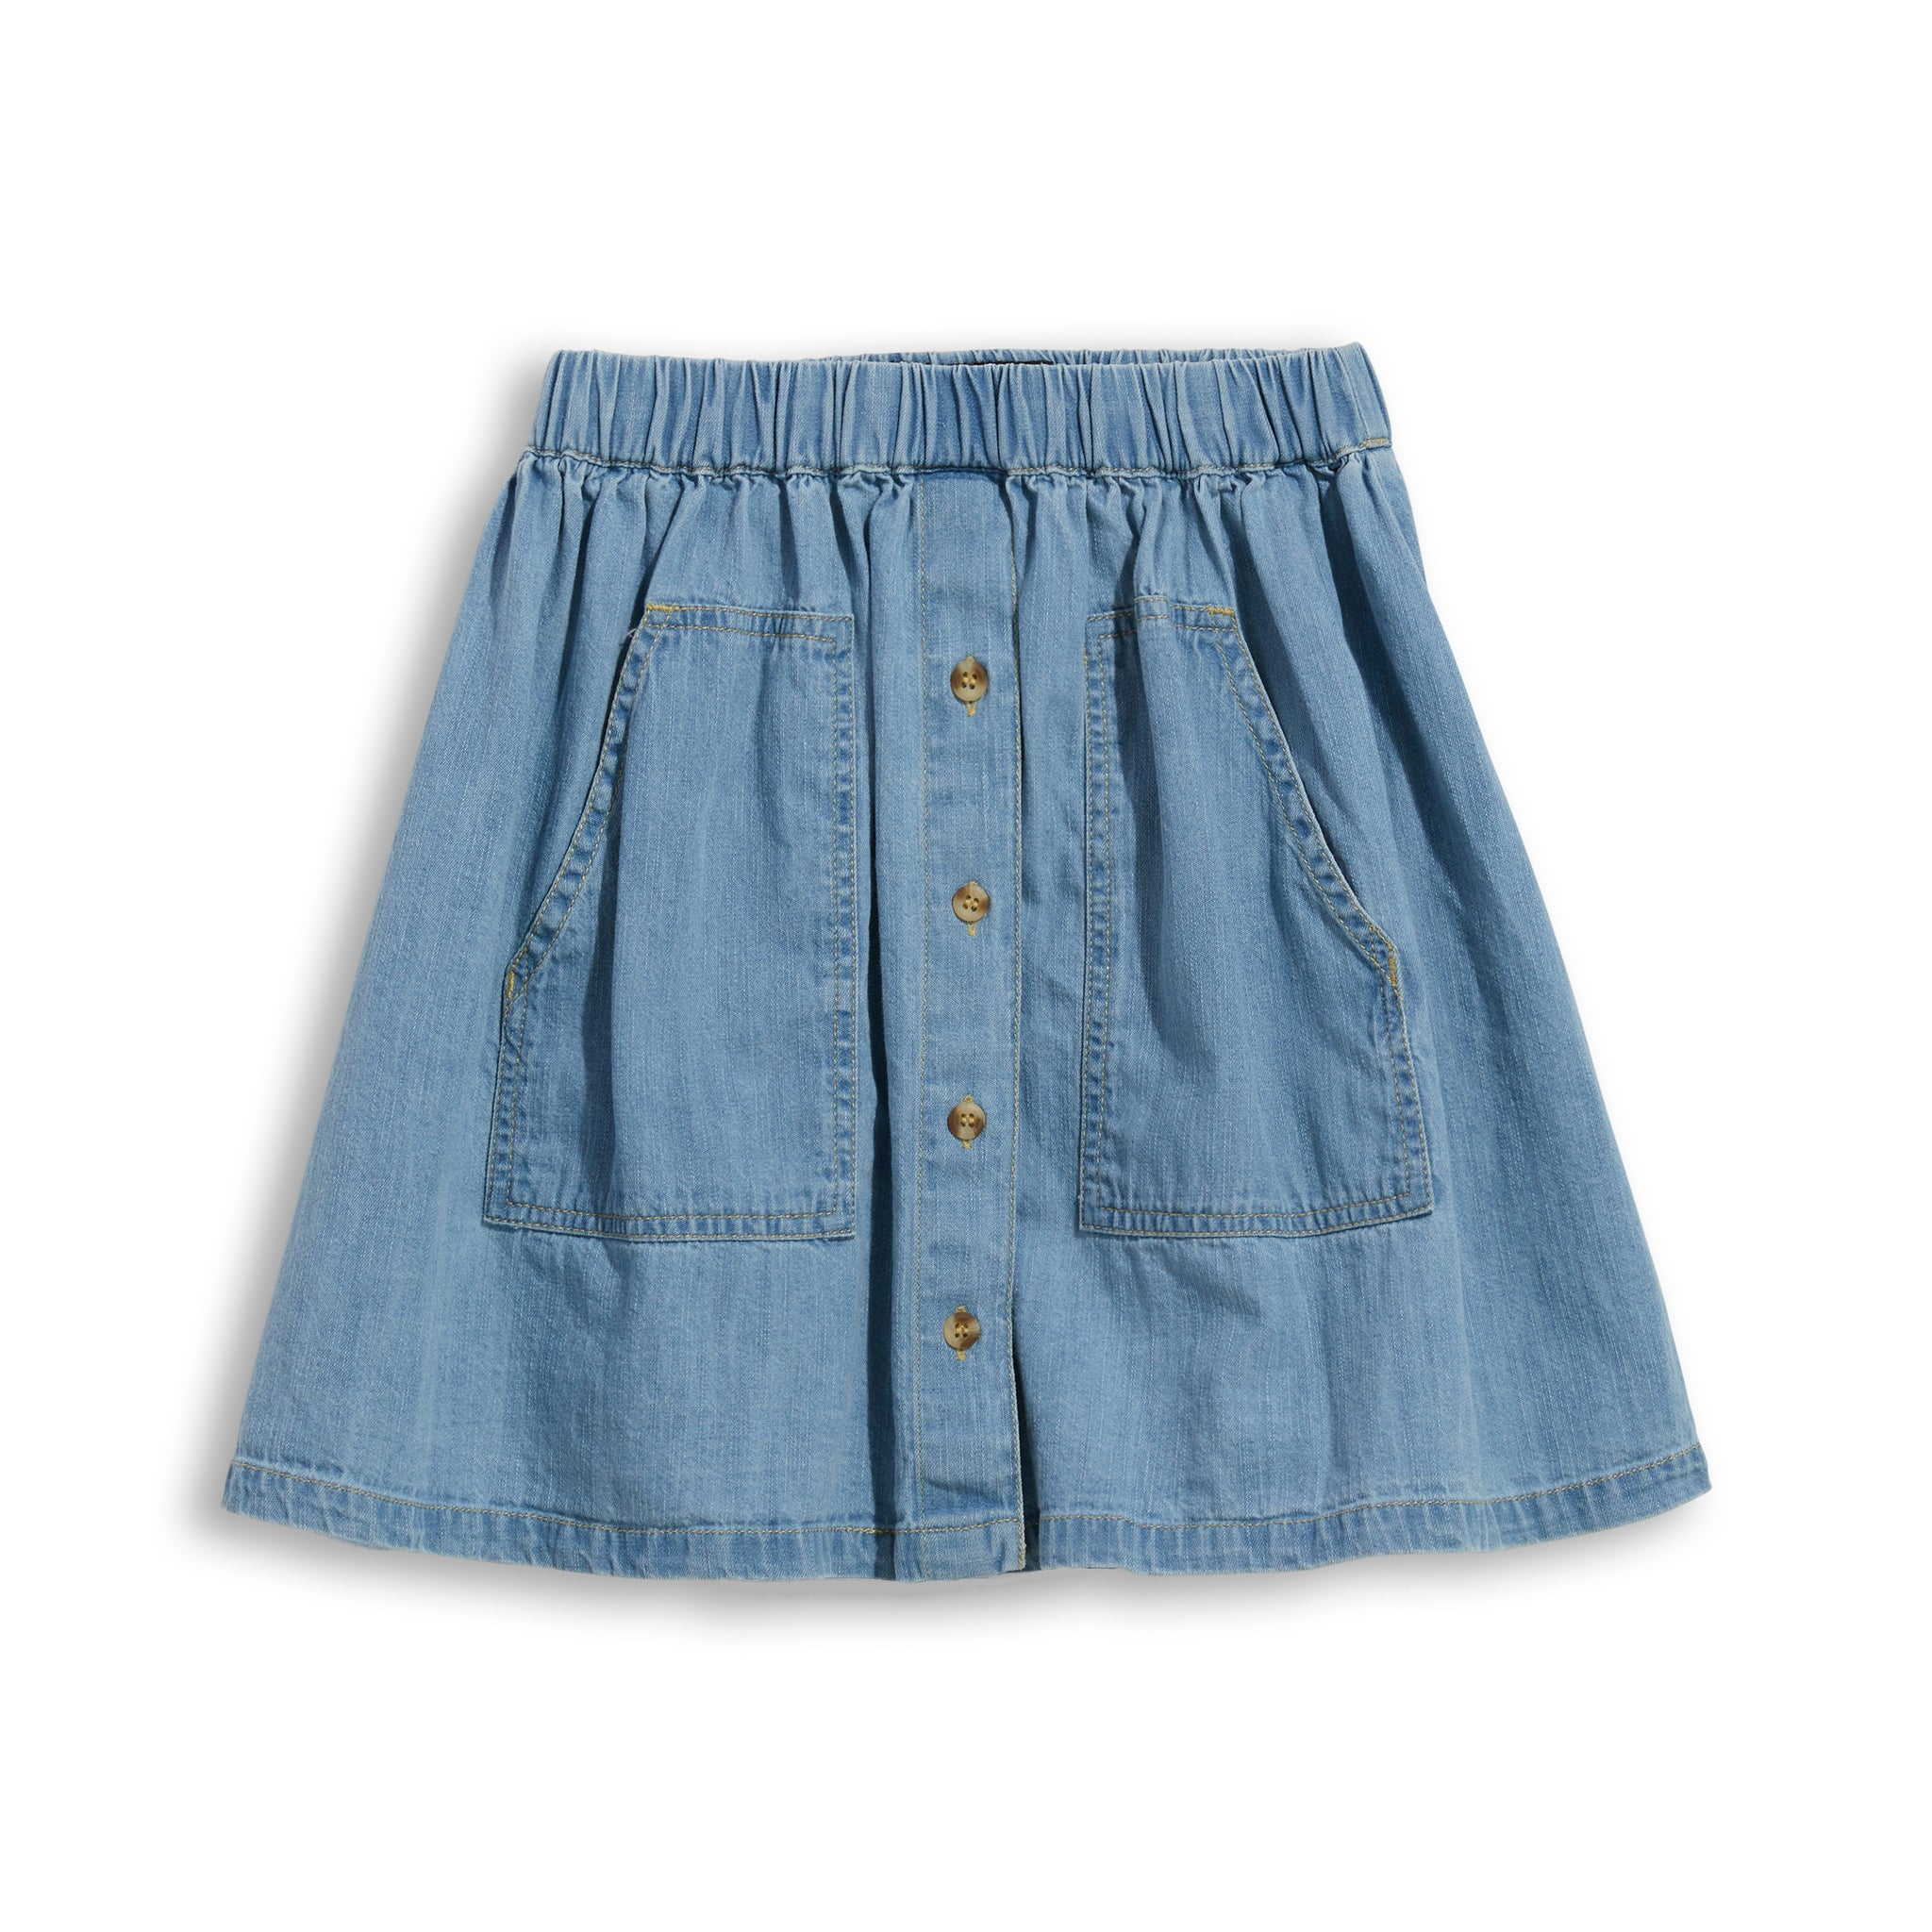 ASHBY Bleached Blue - Denim Skirt 1